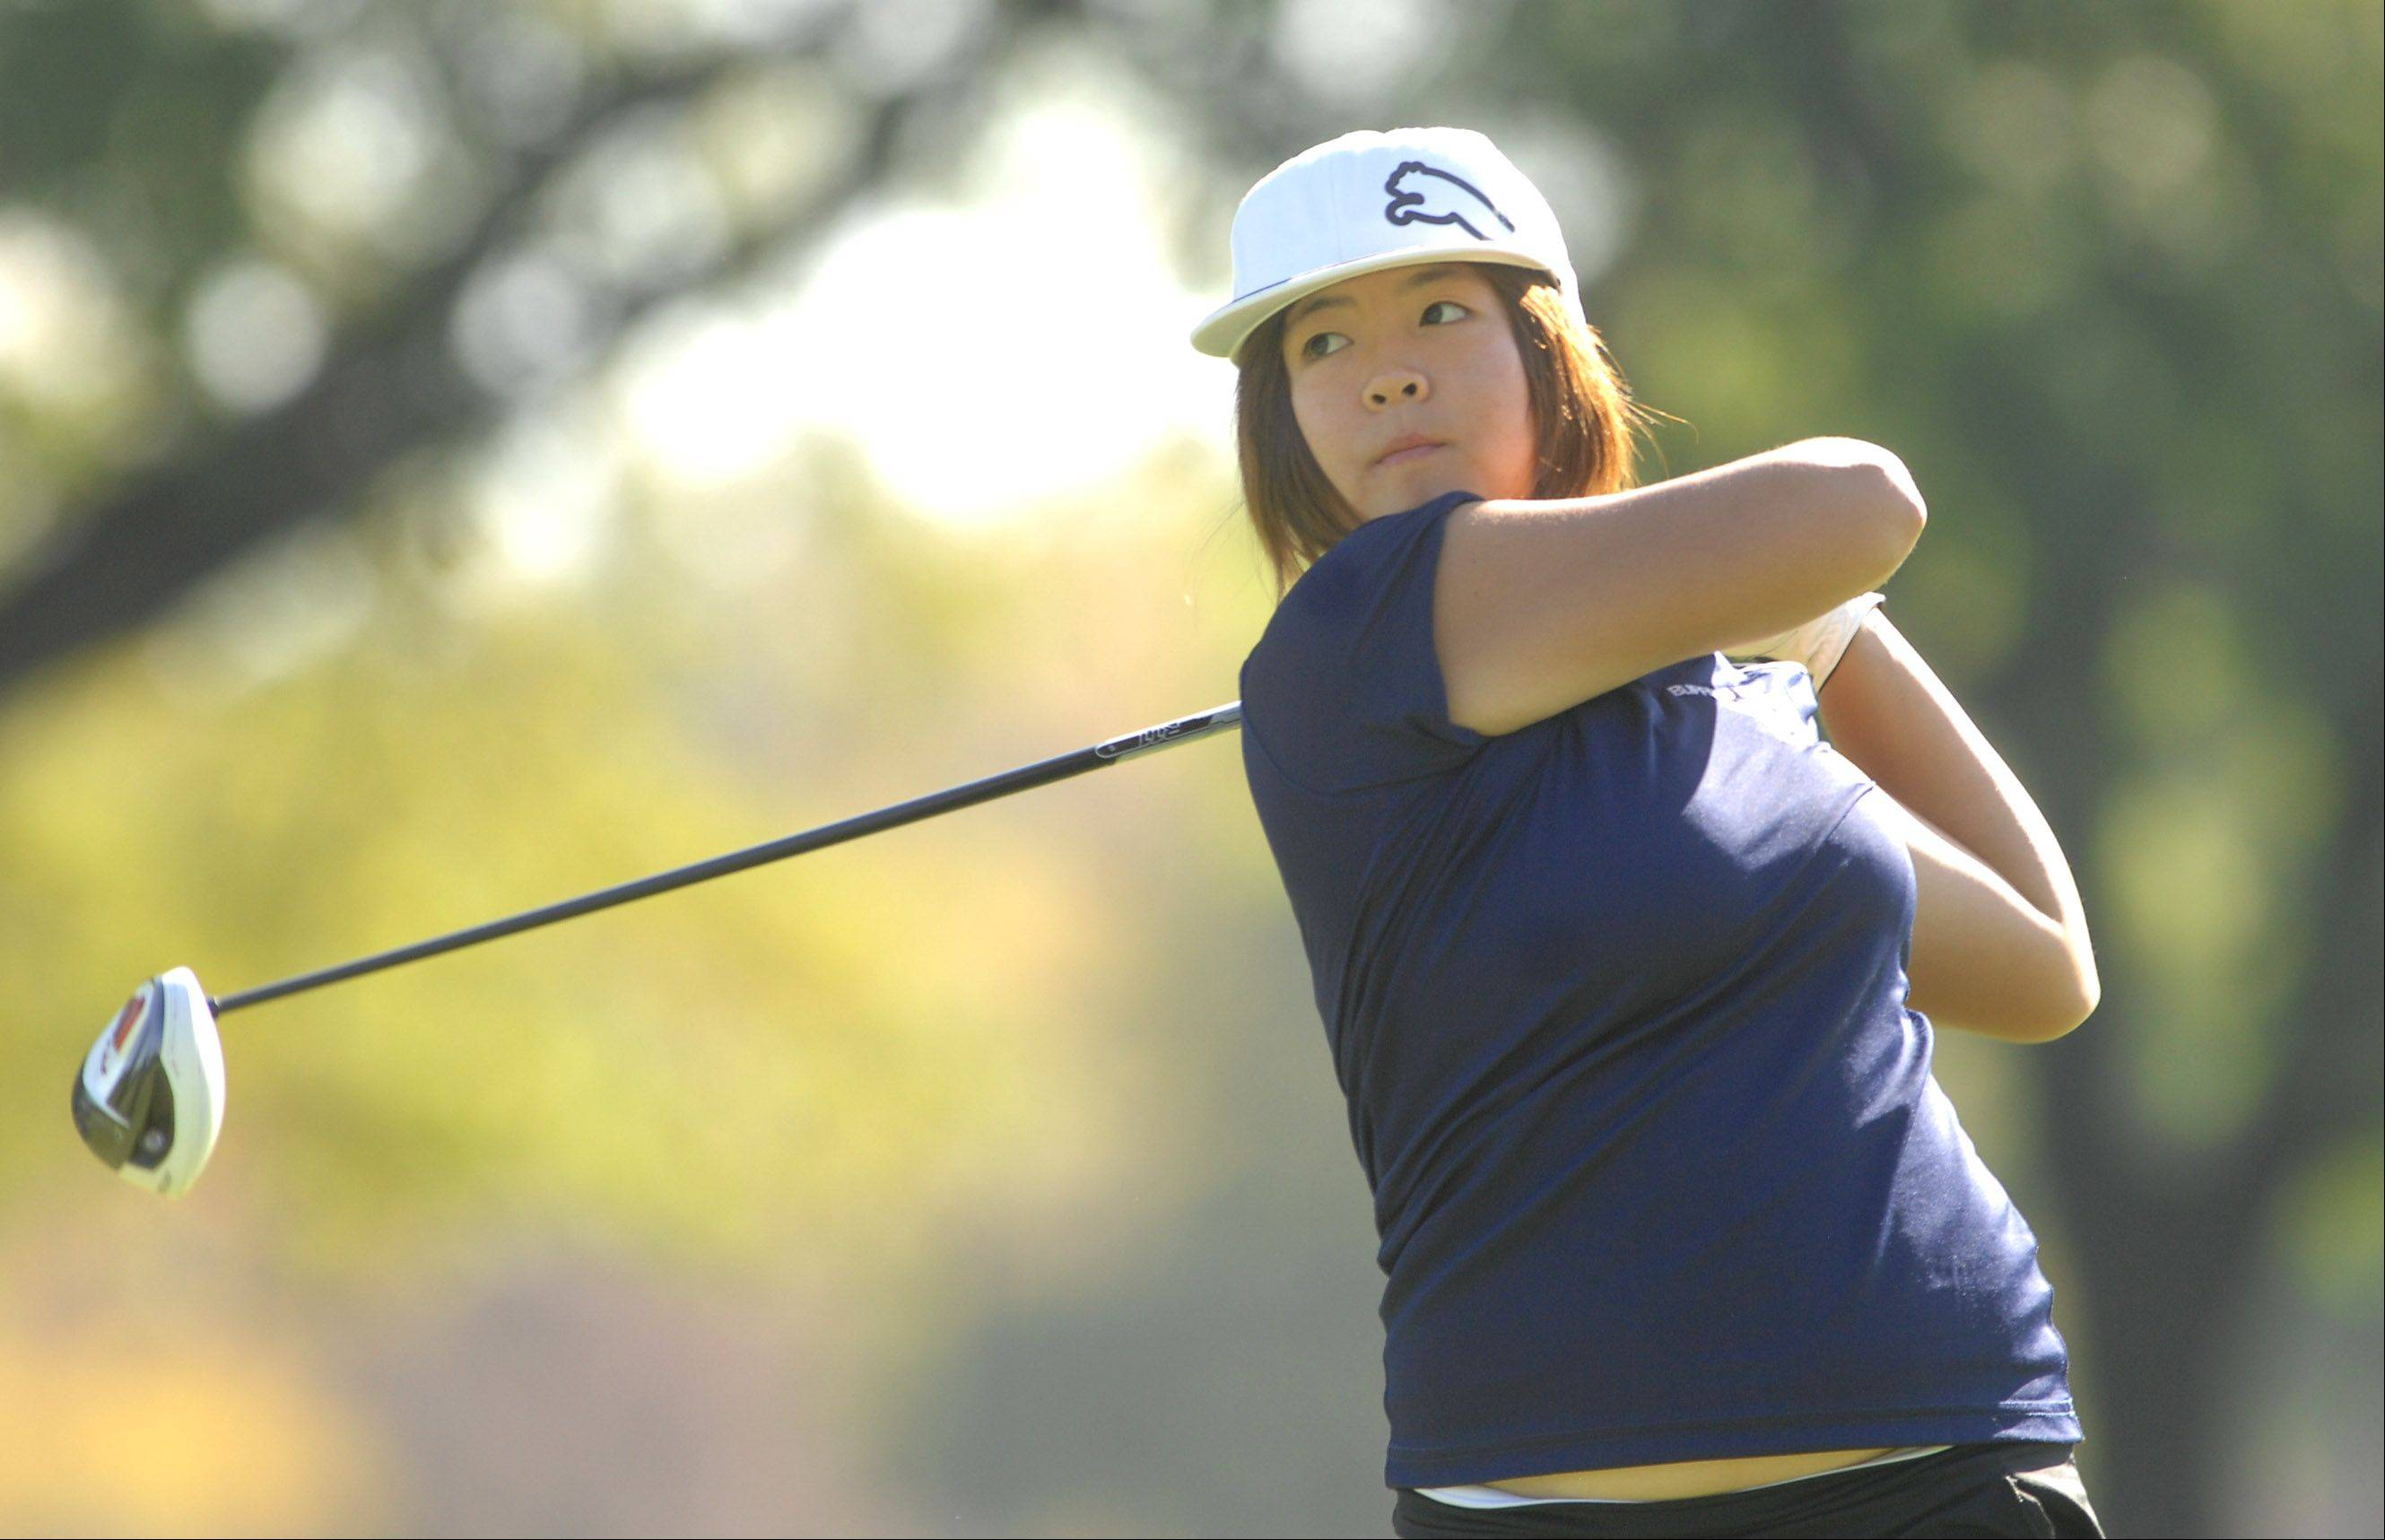 Buffalo Grove's Grace Kil is ready to begin an attempt at a high school grand slam of golf — winning the conference, regional, sectional and state meets in her senior year.